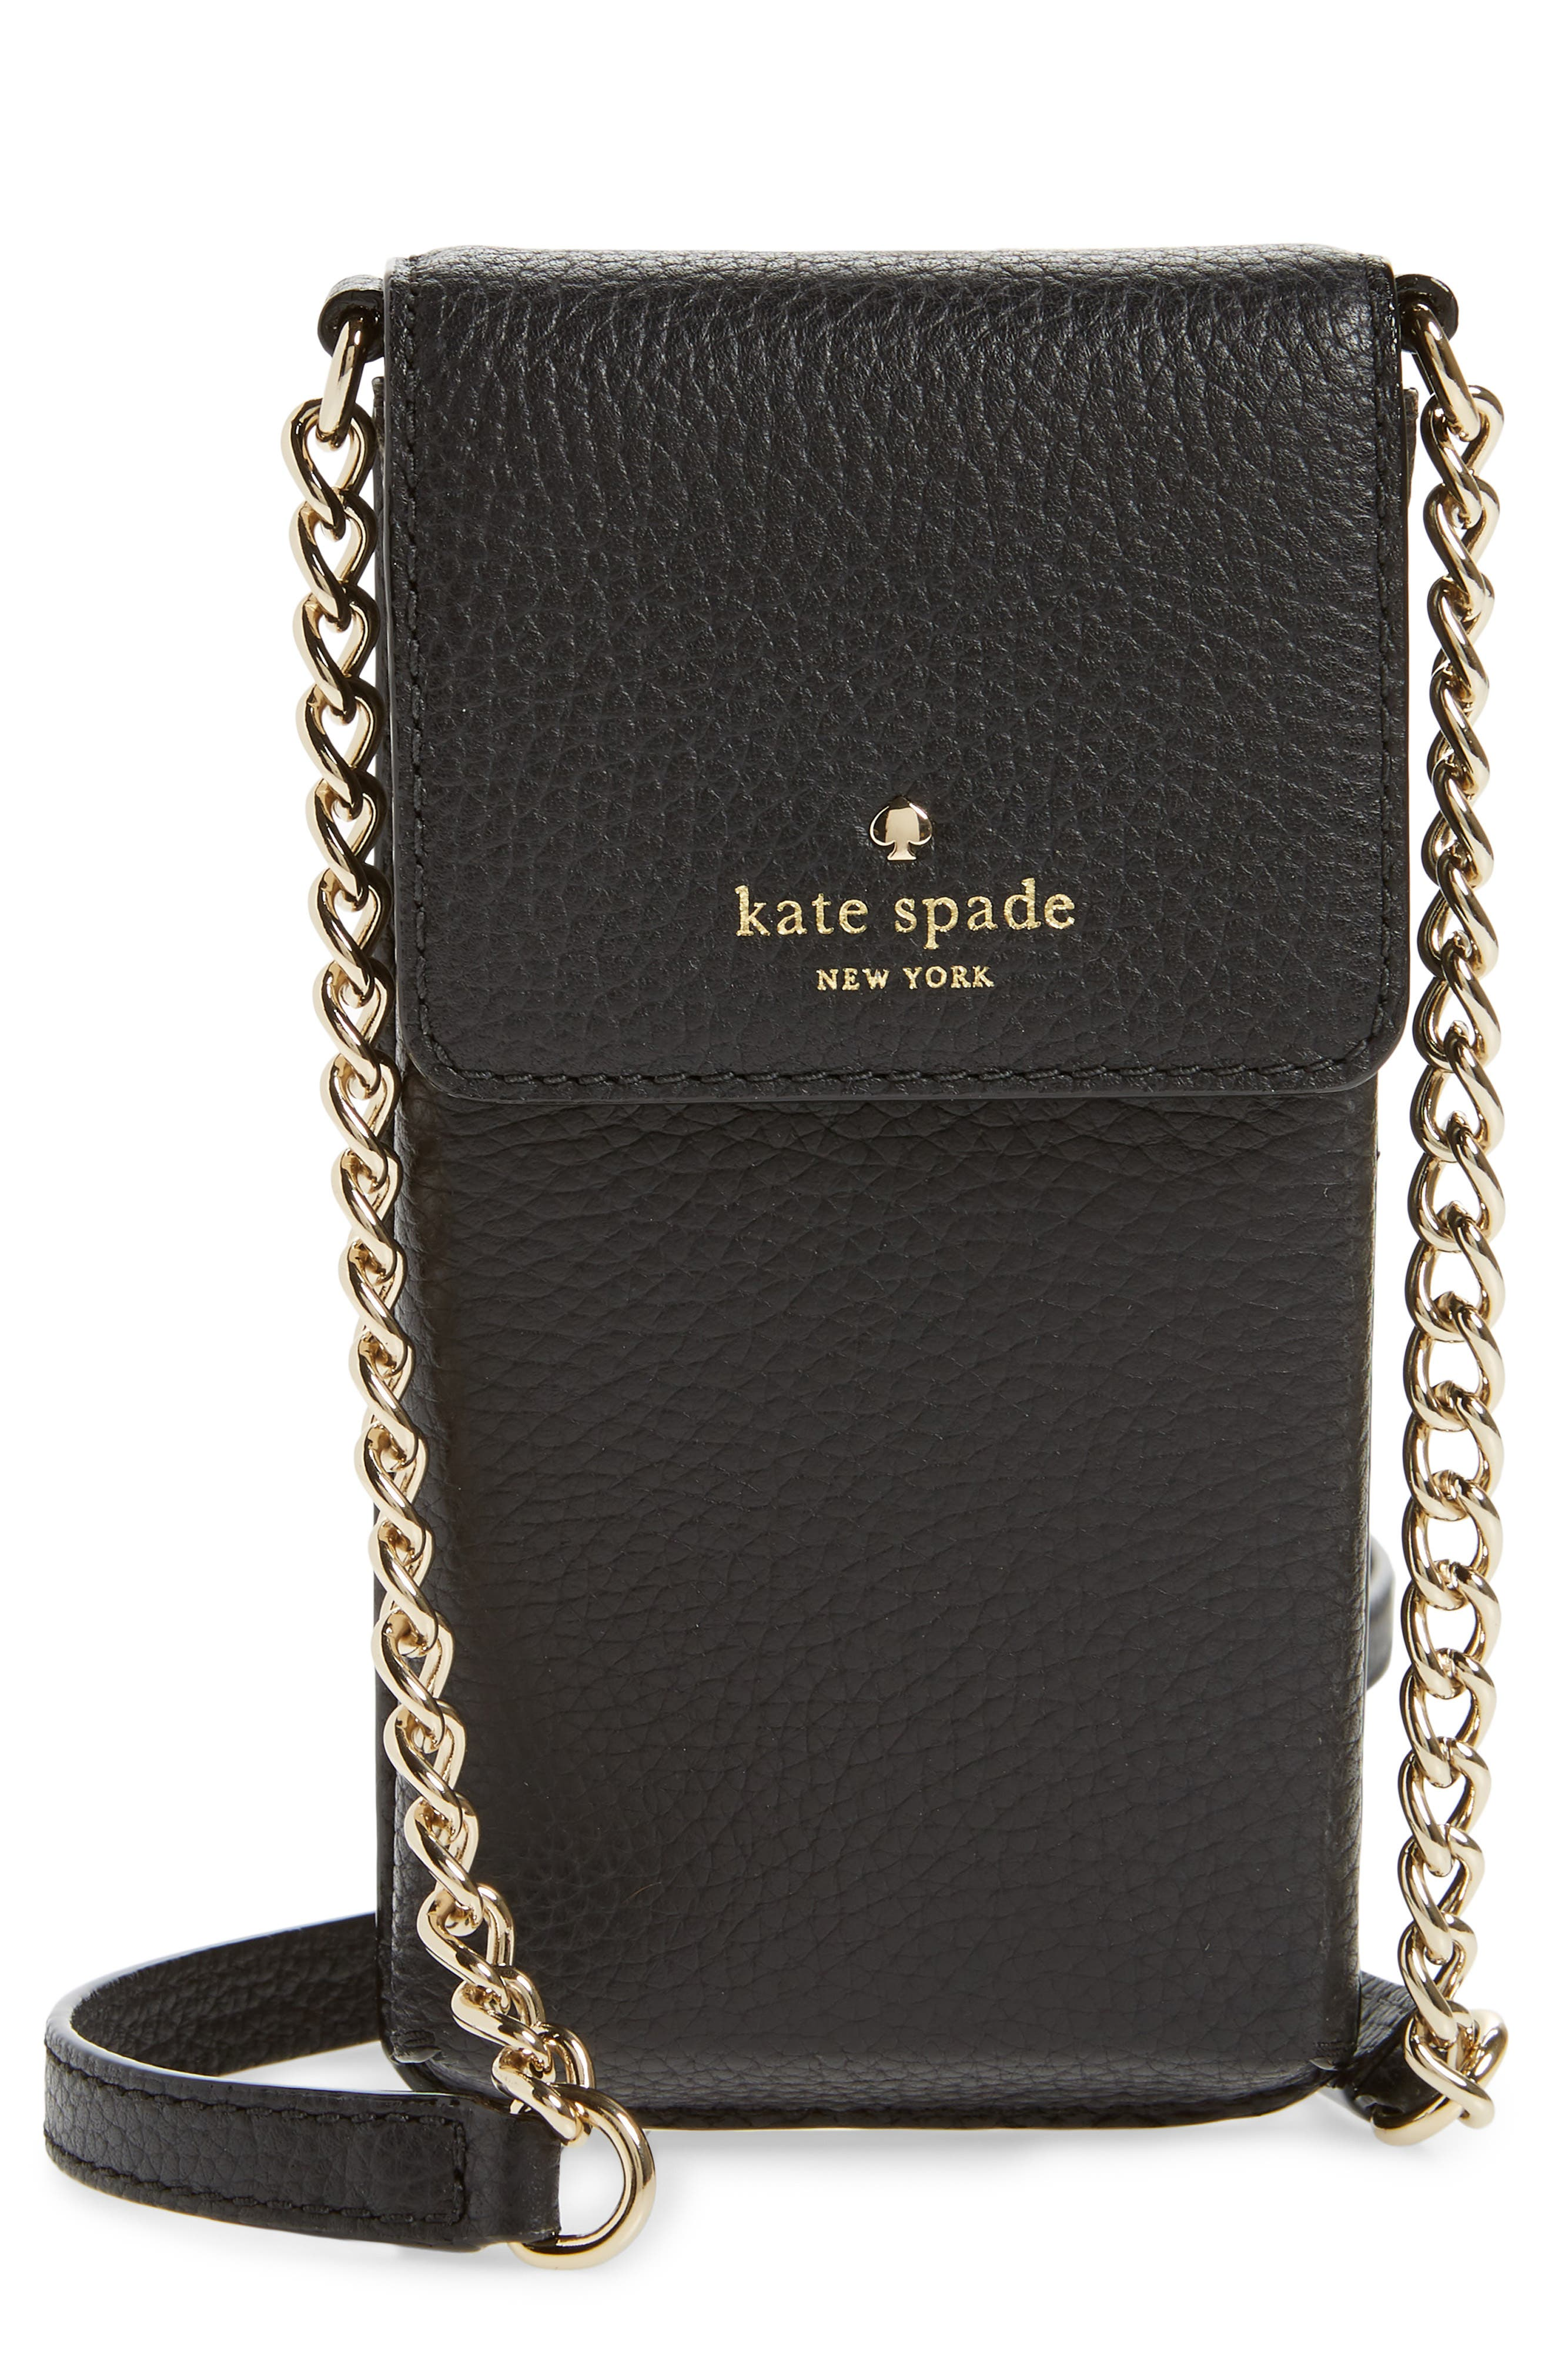 KATE SPADE NEW YORK,                             north/south leather smartphone crossbody bag,                             Main thumbnail 1, color,                             001